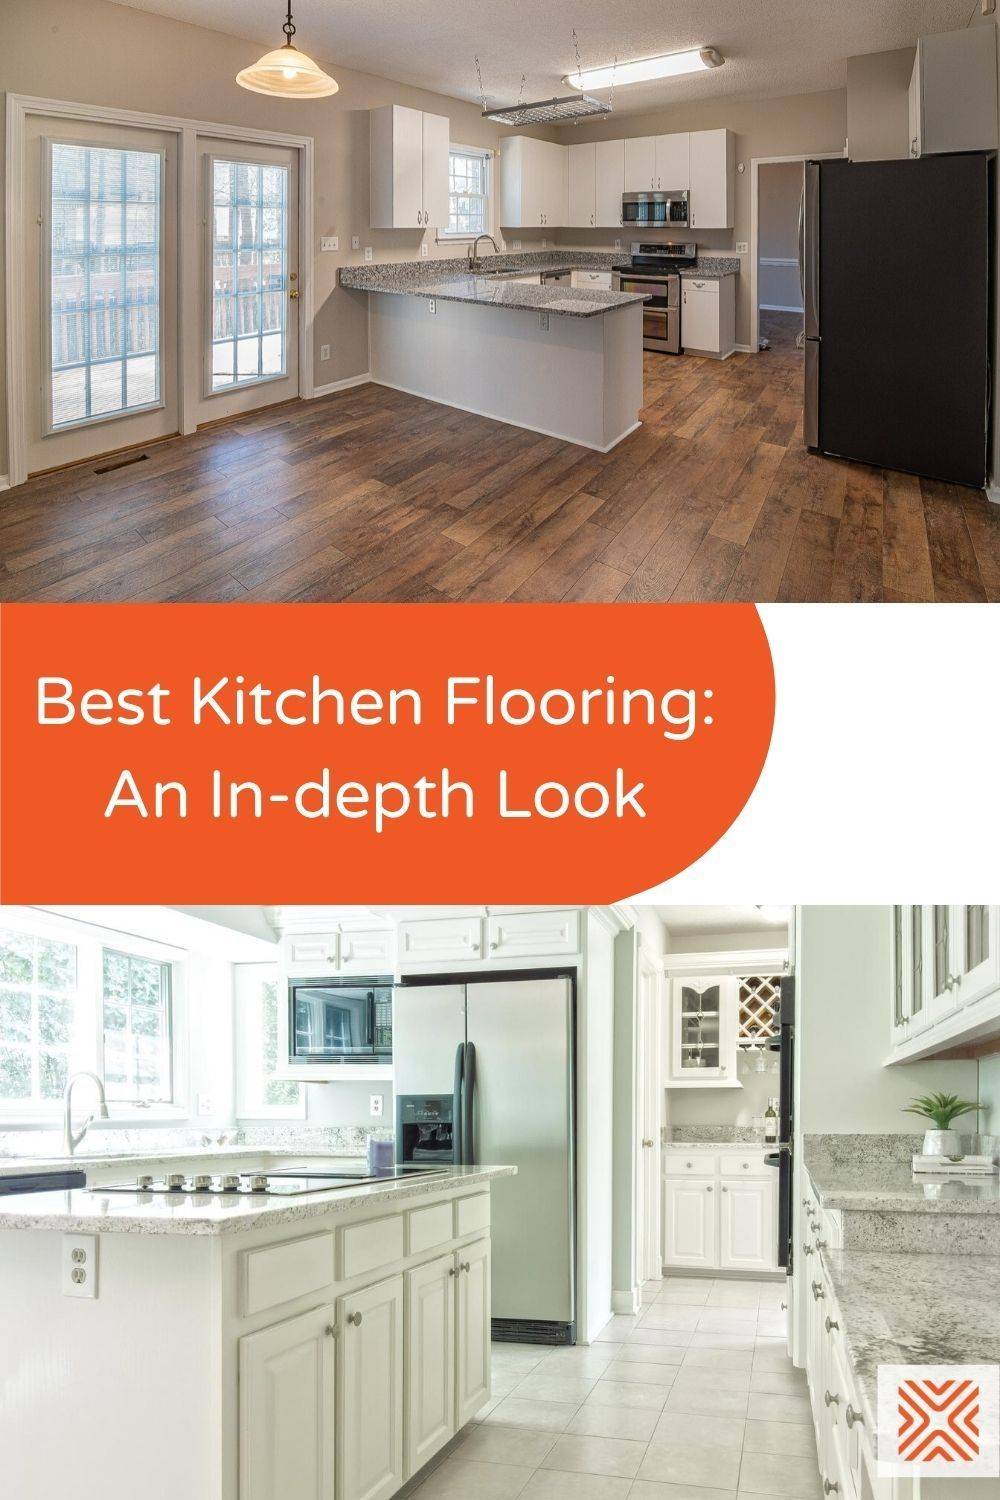 Picking out new kitchen flooring? Let's help you narrow down your search with our detailed comparison of the most popular kitchen flooring options, so you can be ready for your next kitchen renovation.